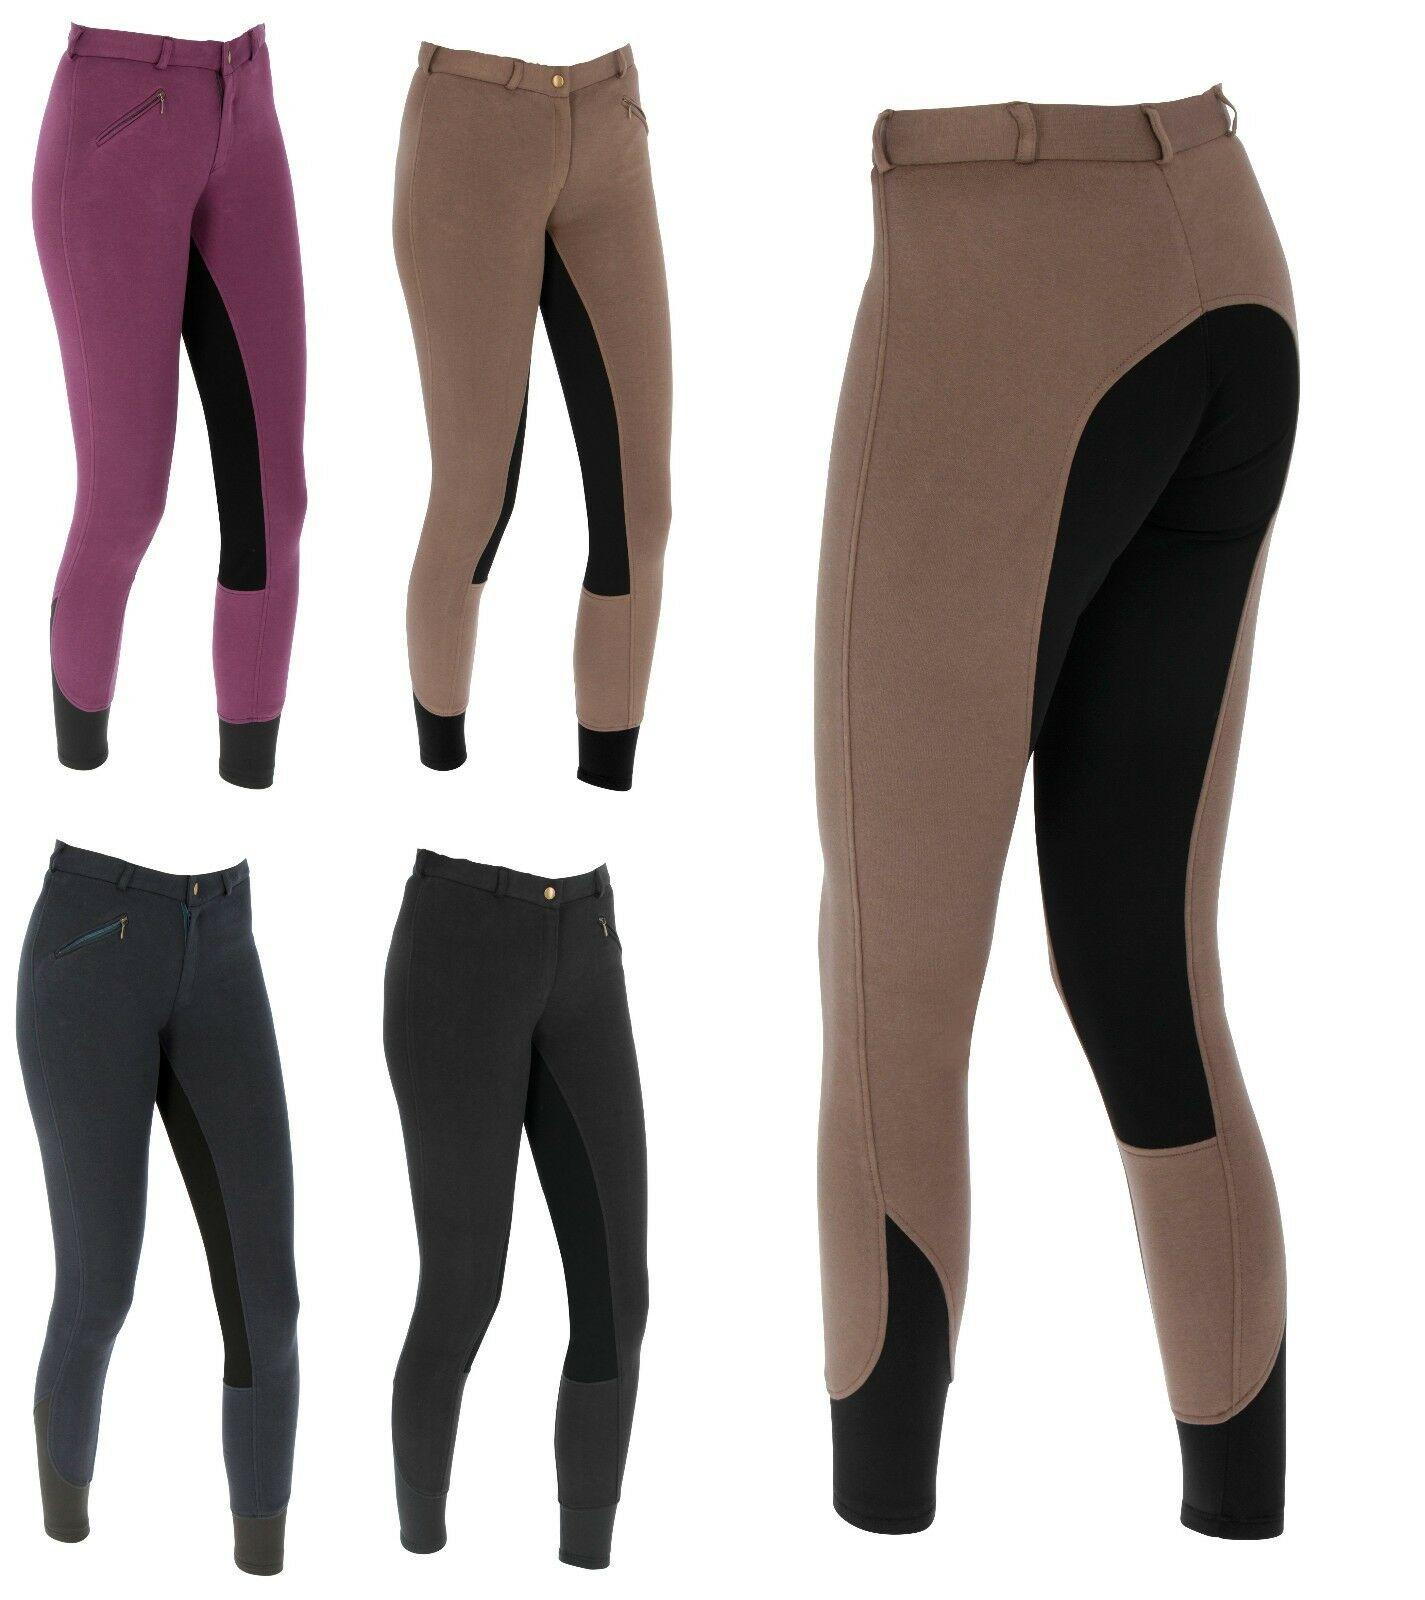 SportS Basic Reithose Damen Vollbesatz Baumwolle-Elasthan ReitsportPlus Economic